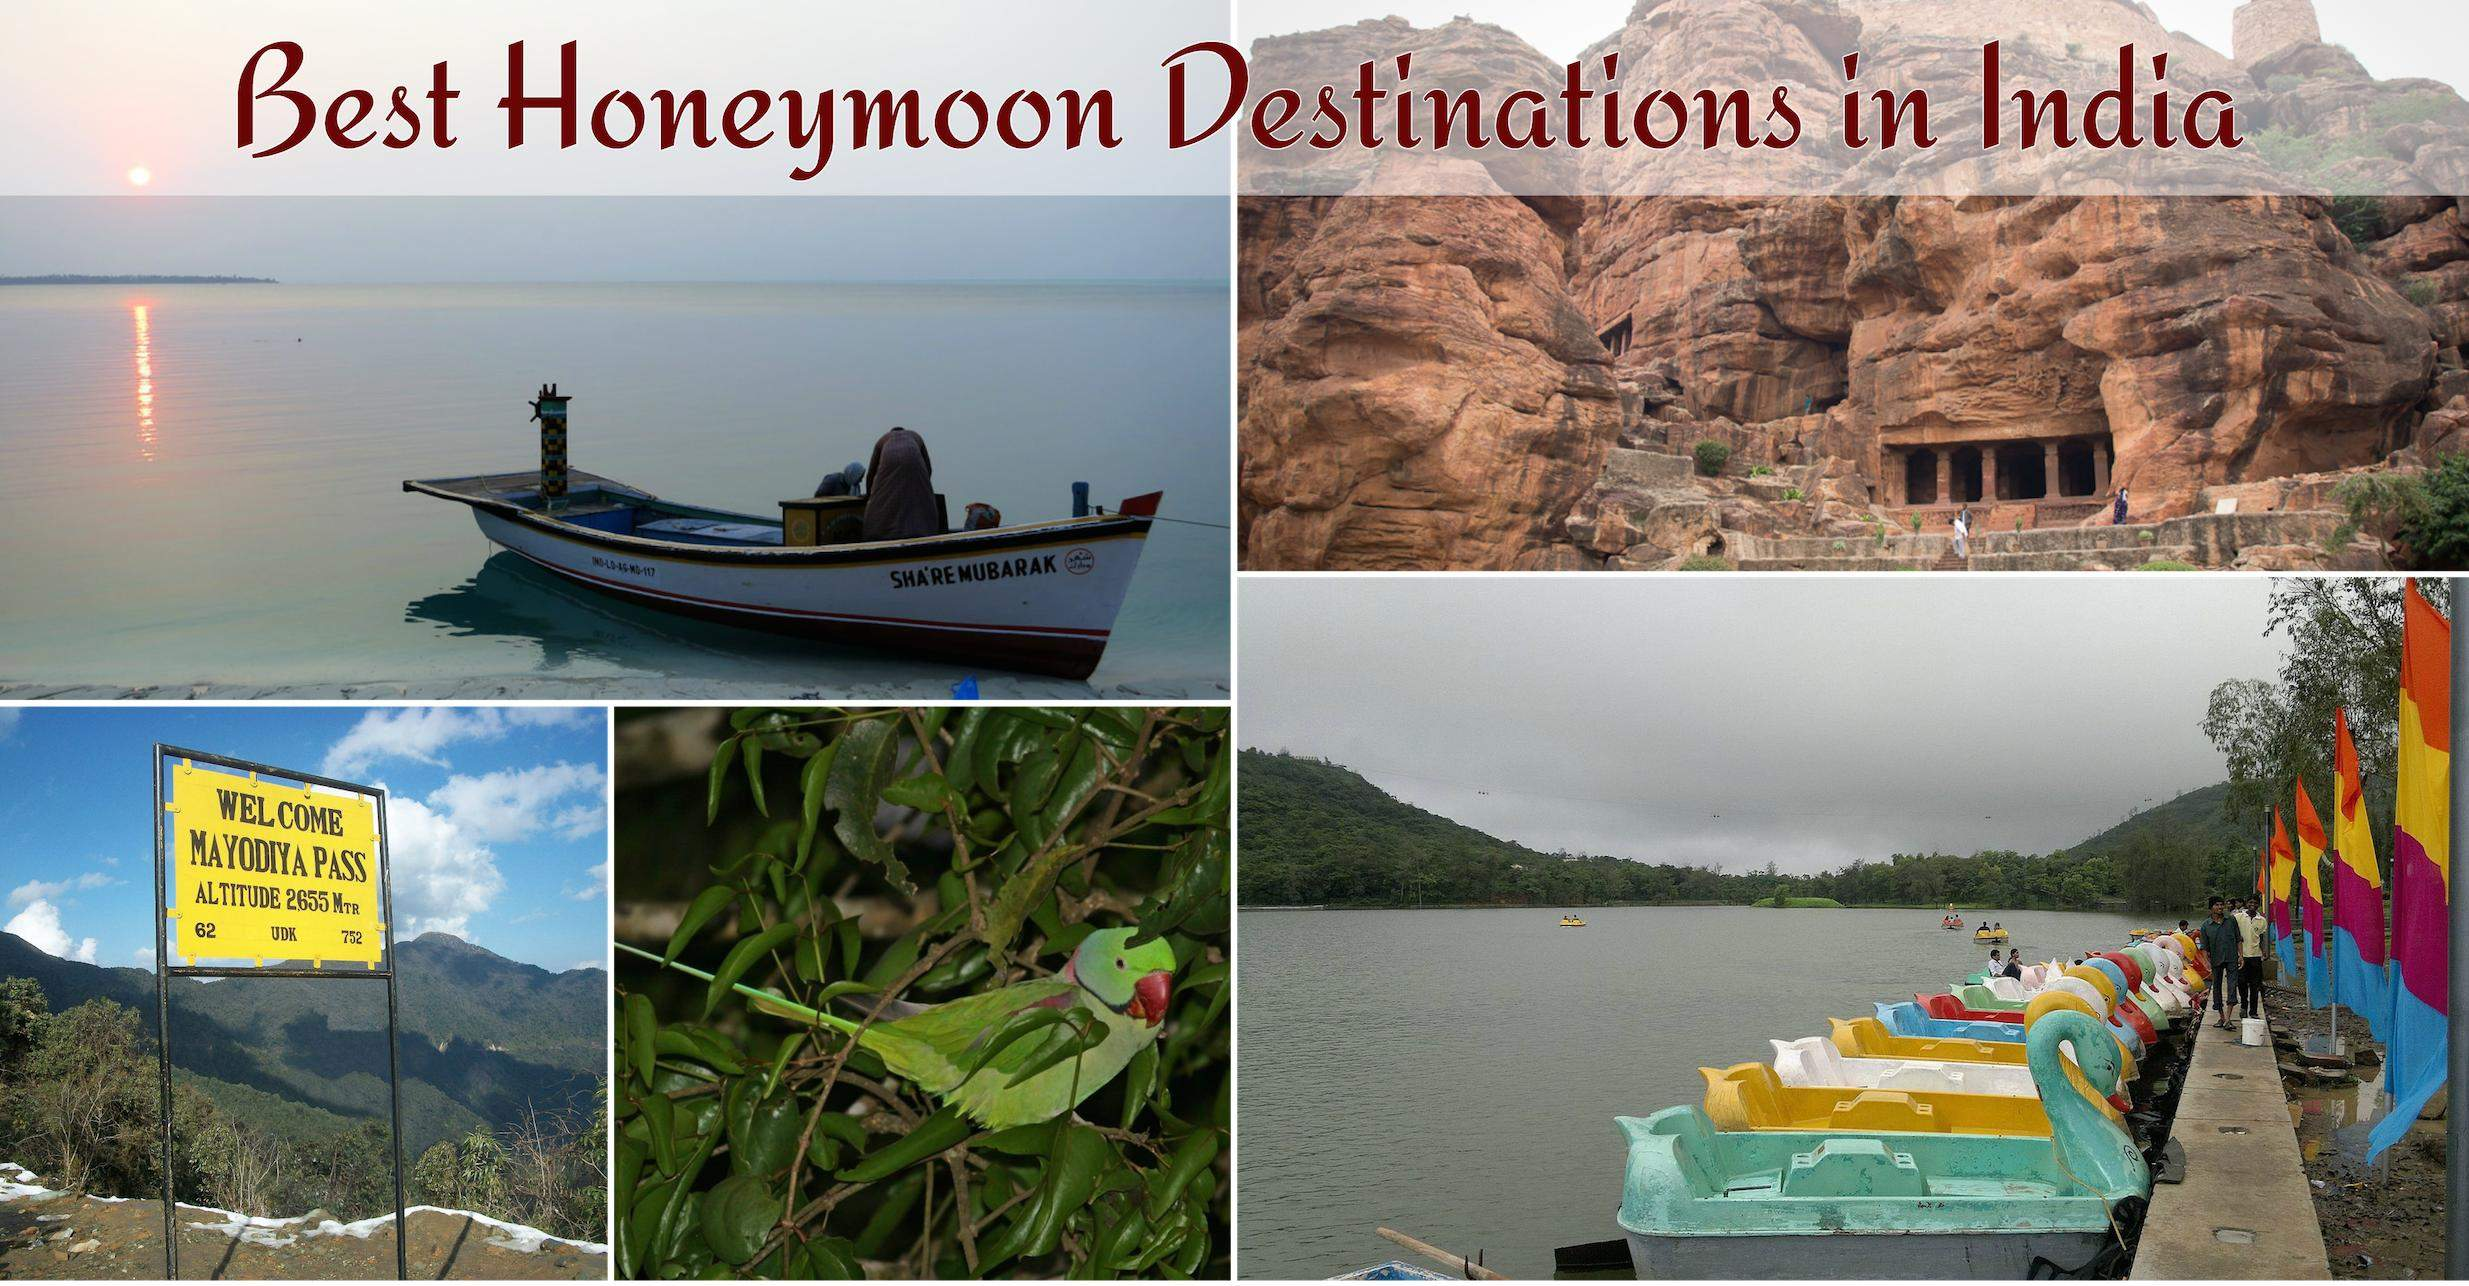 best-honeymoon-destinations-in-india.jpg